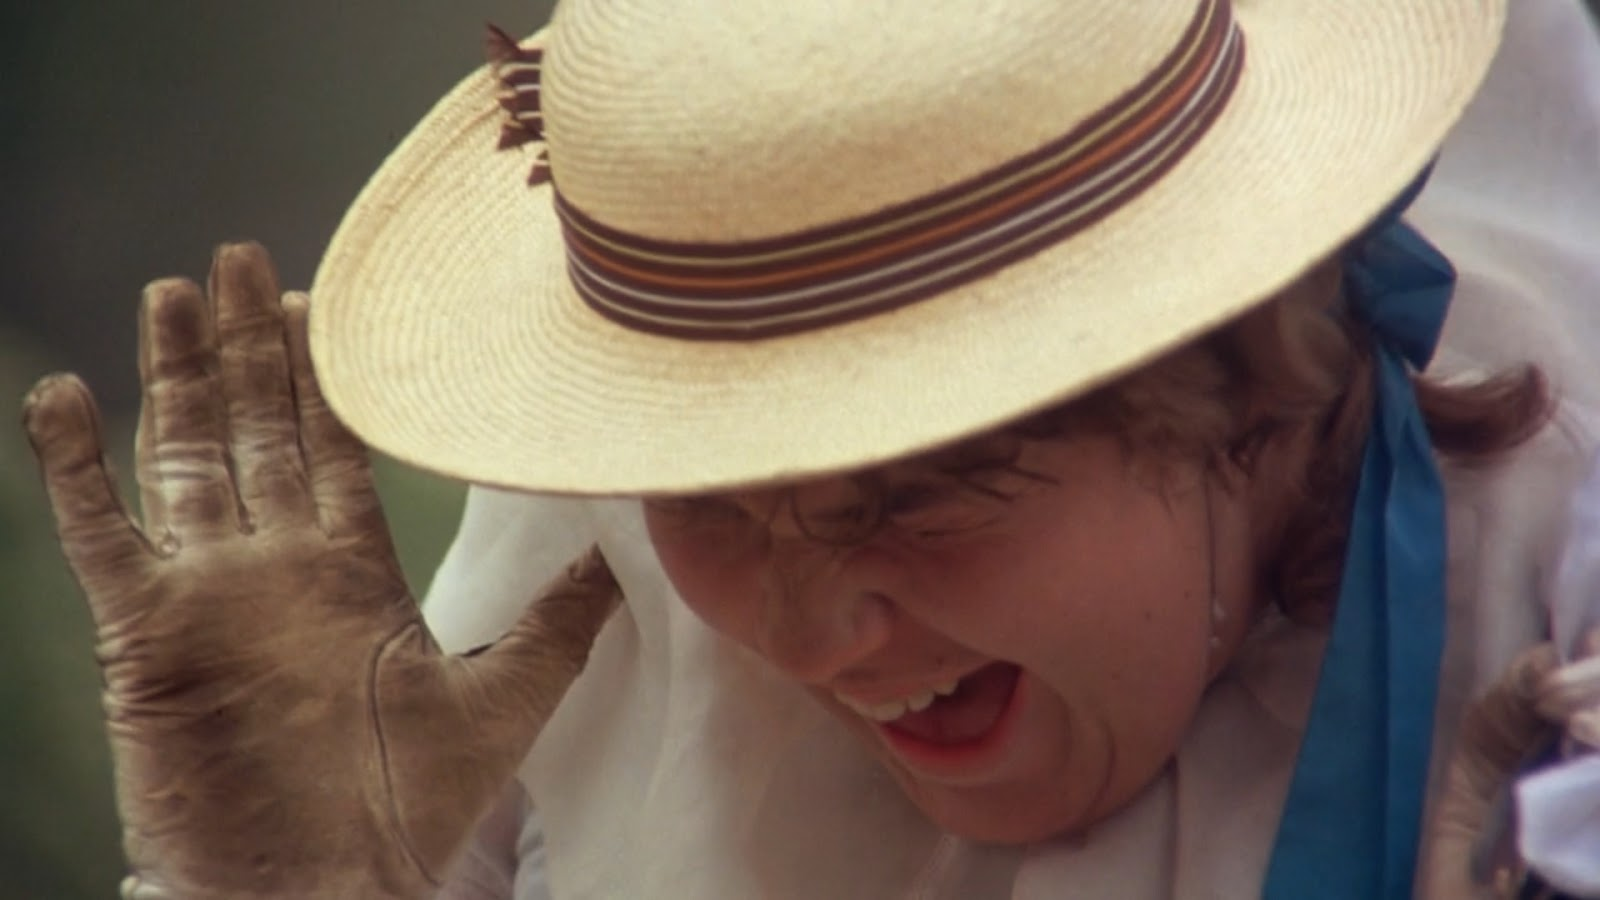 Edith screaming in Picnic at hanging rock